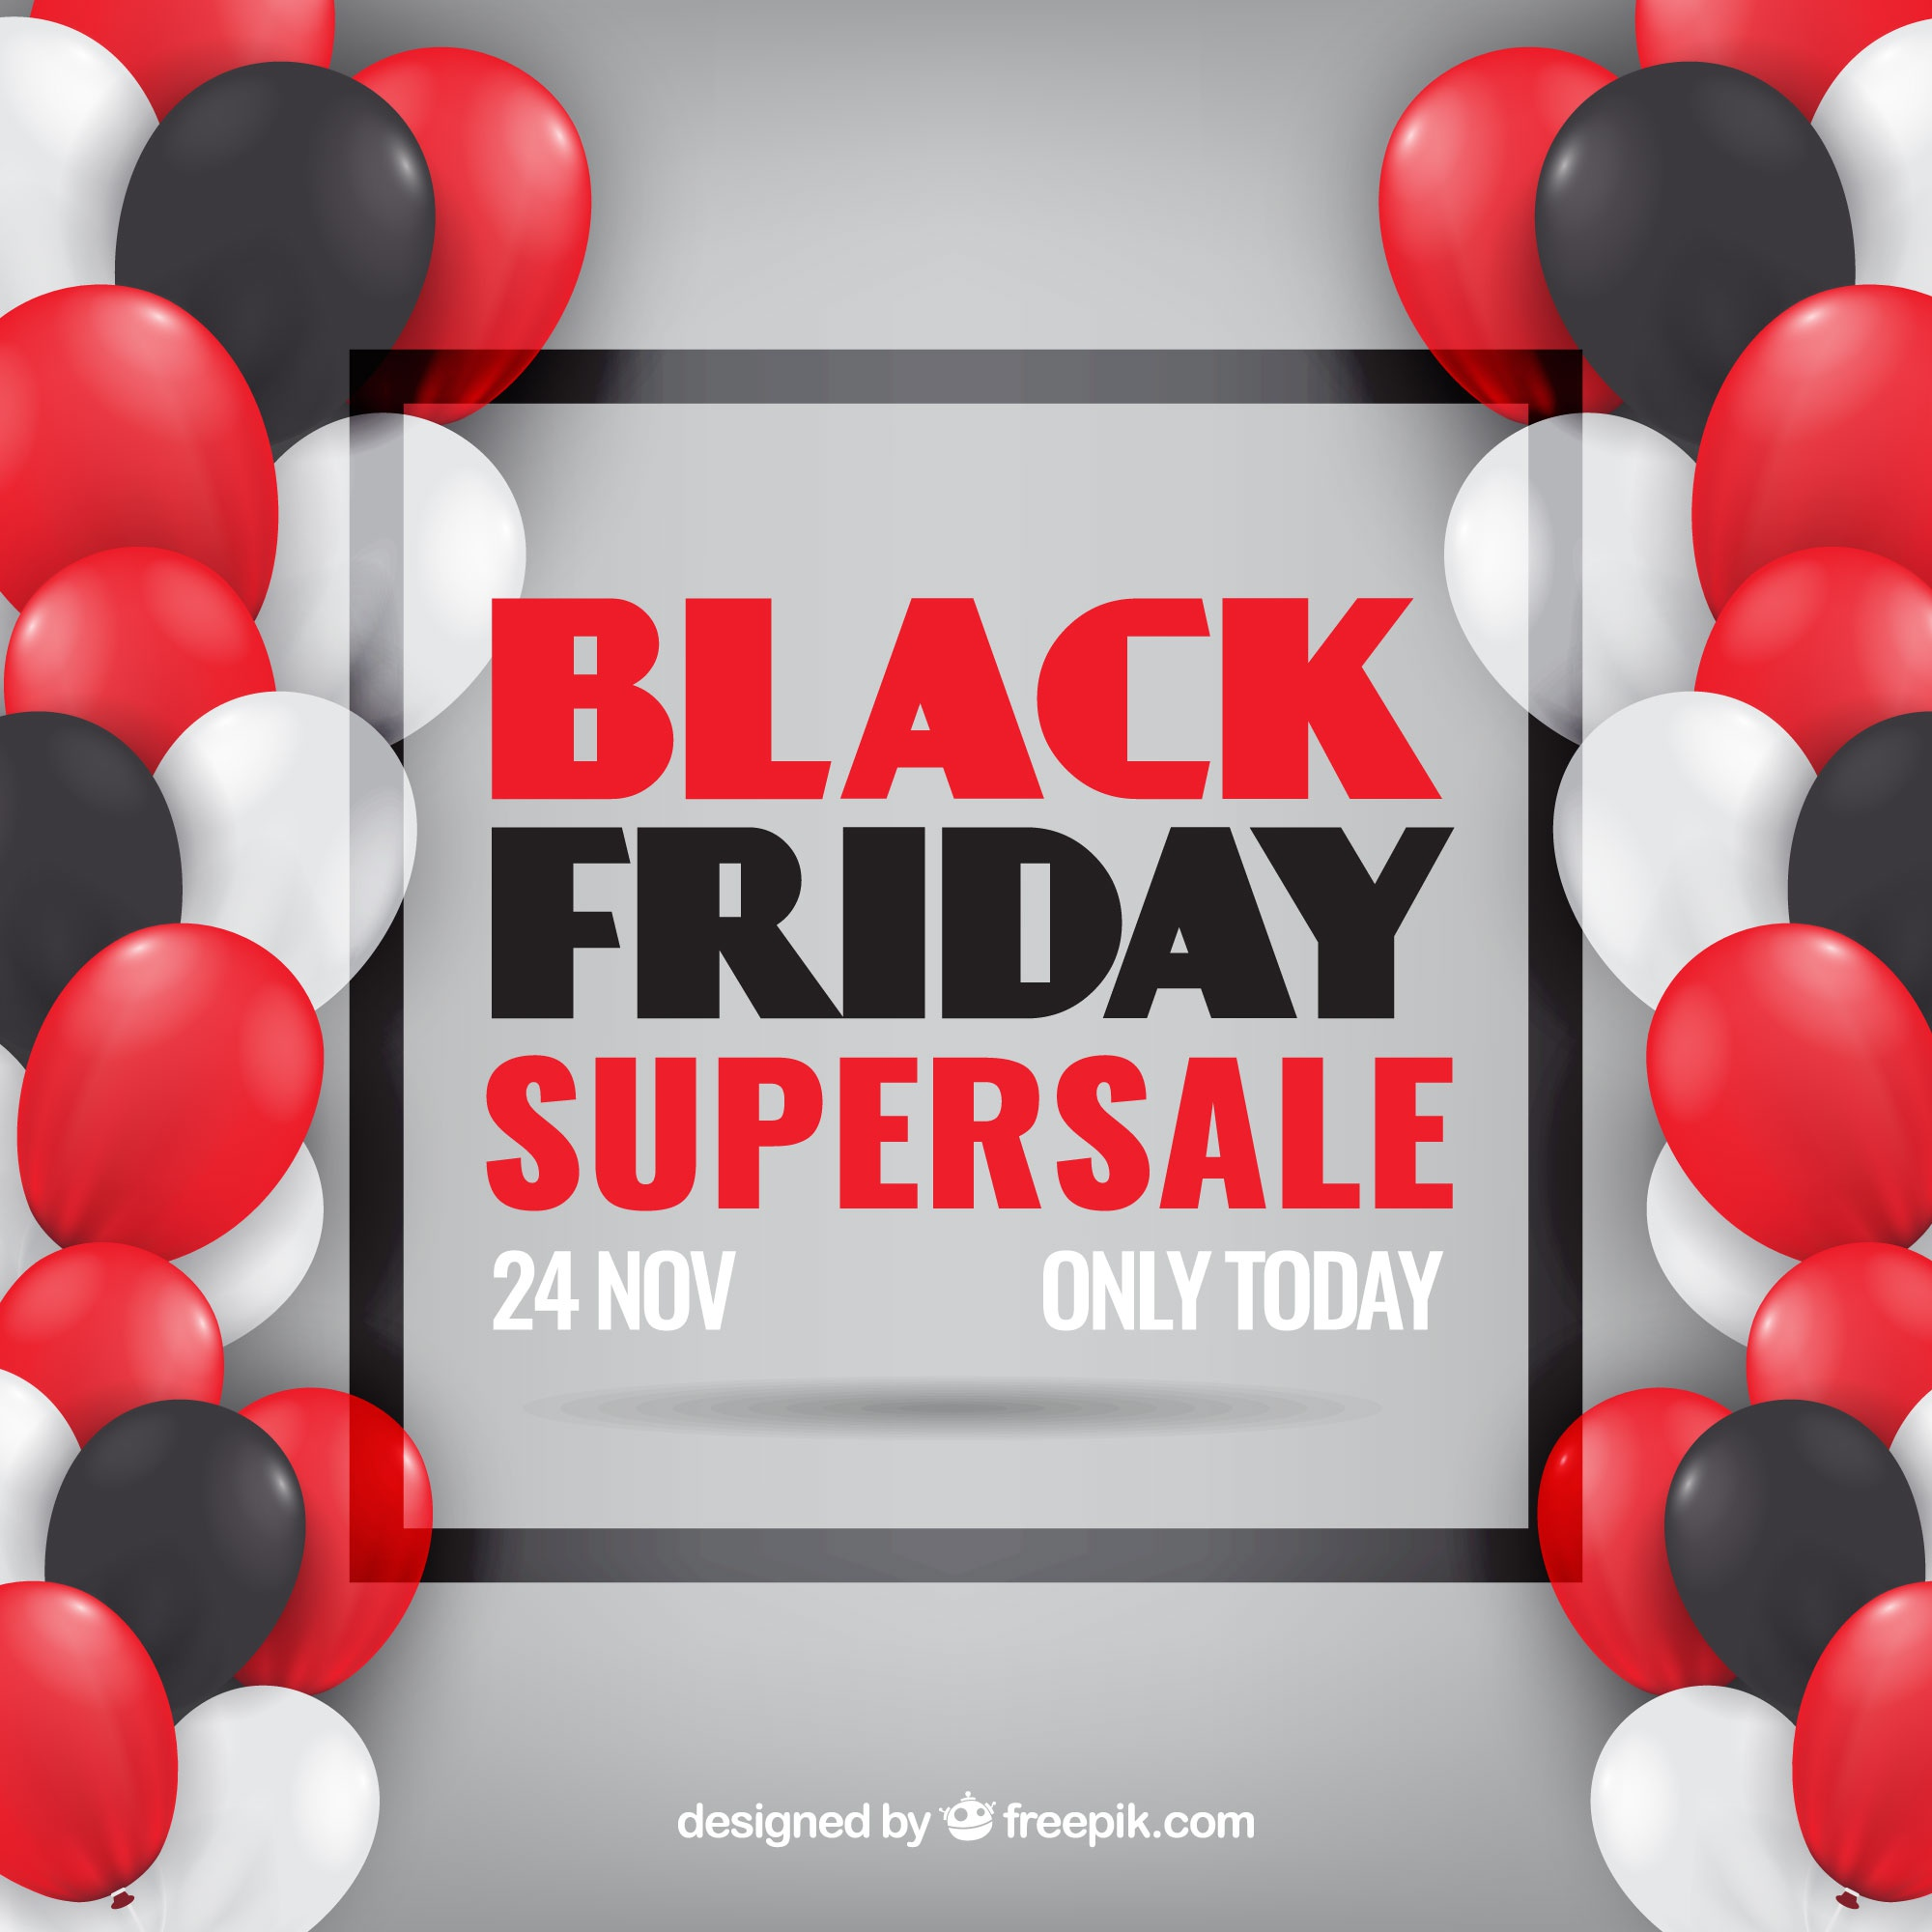 Black friday design with transparent balloons